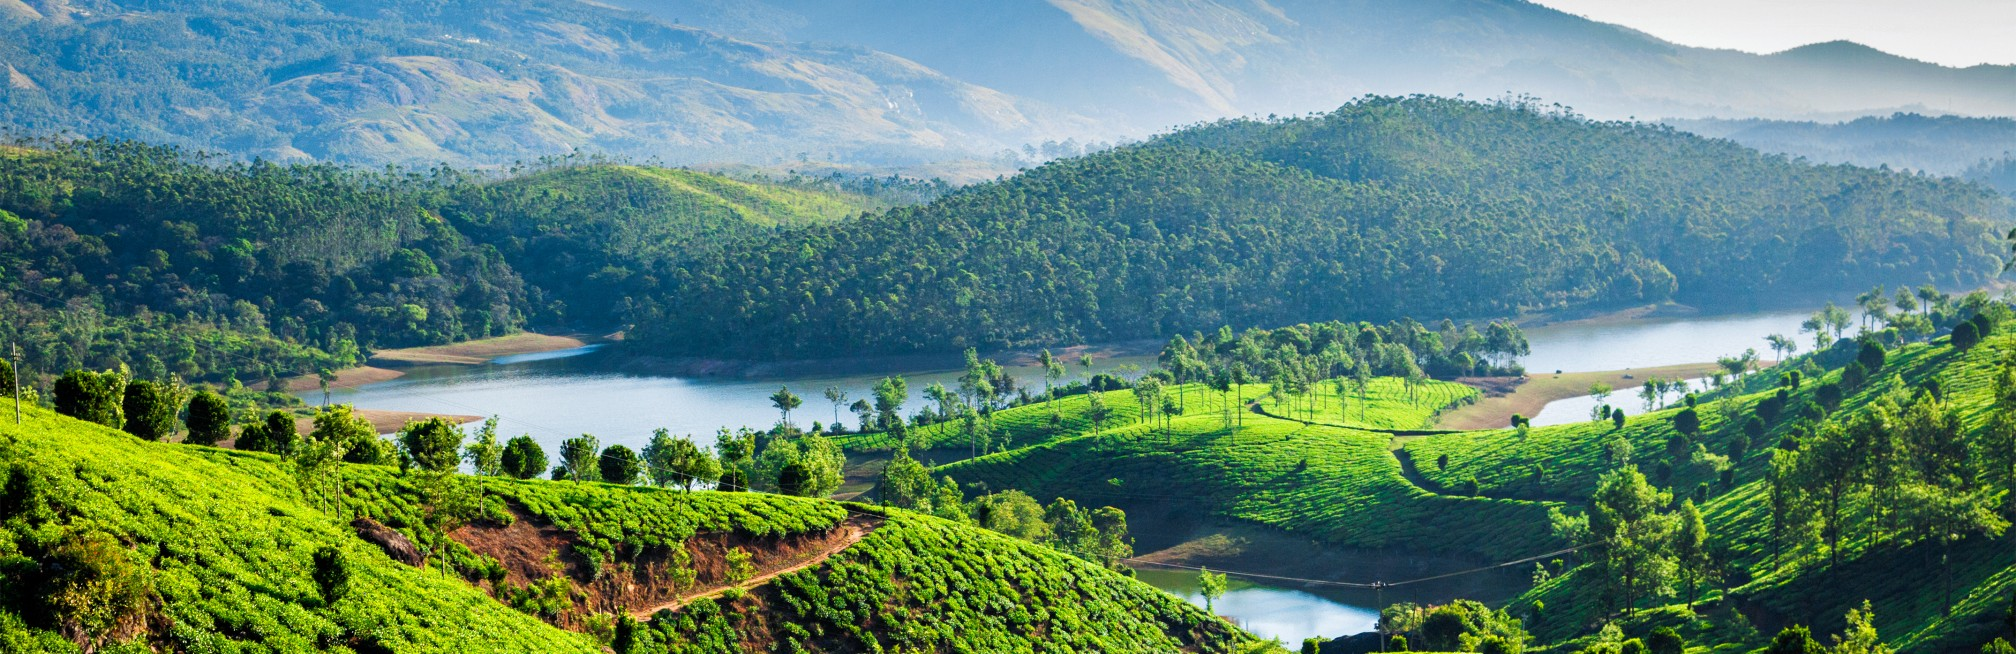 Classic Kerala: beaches and backwaters